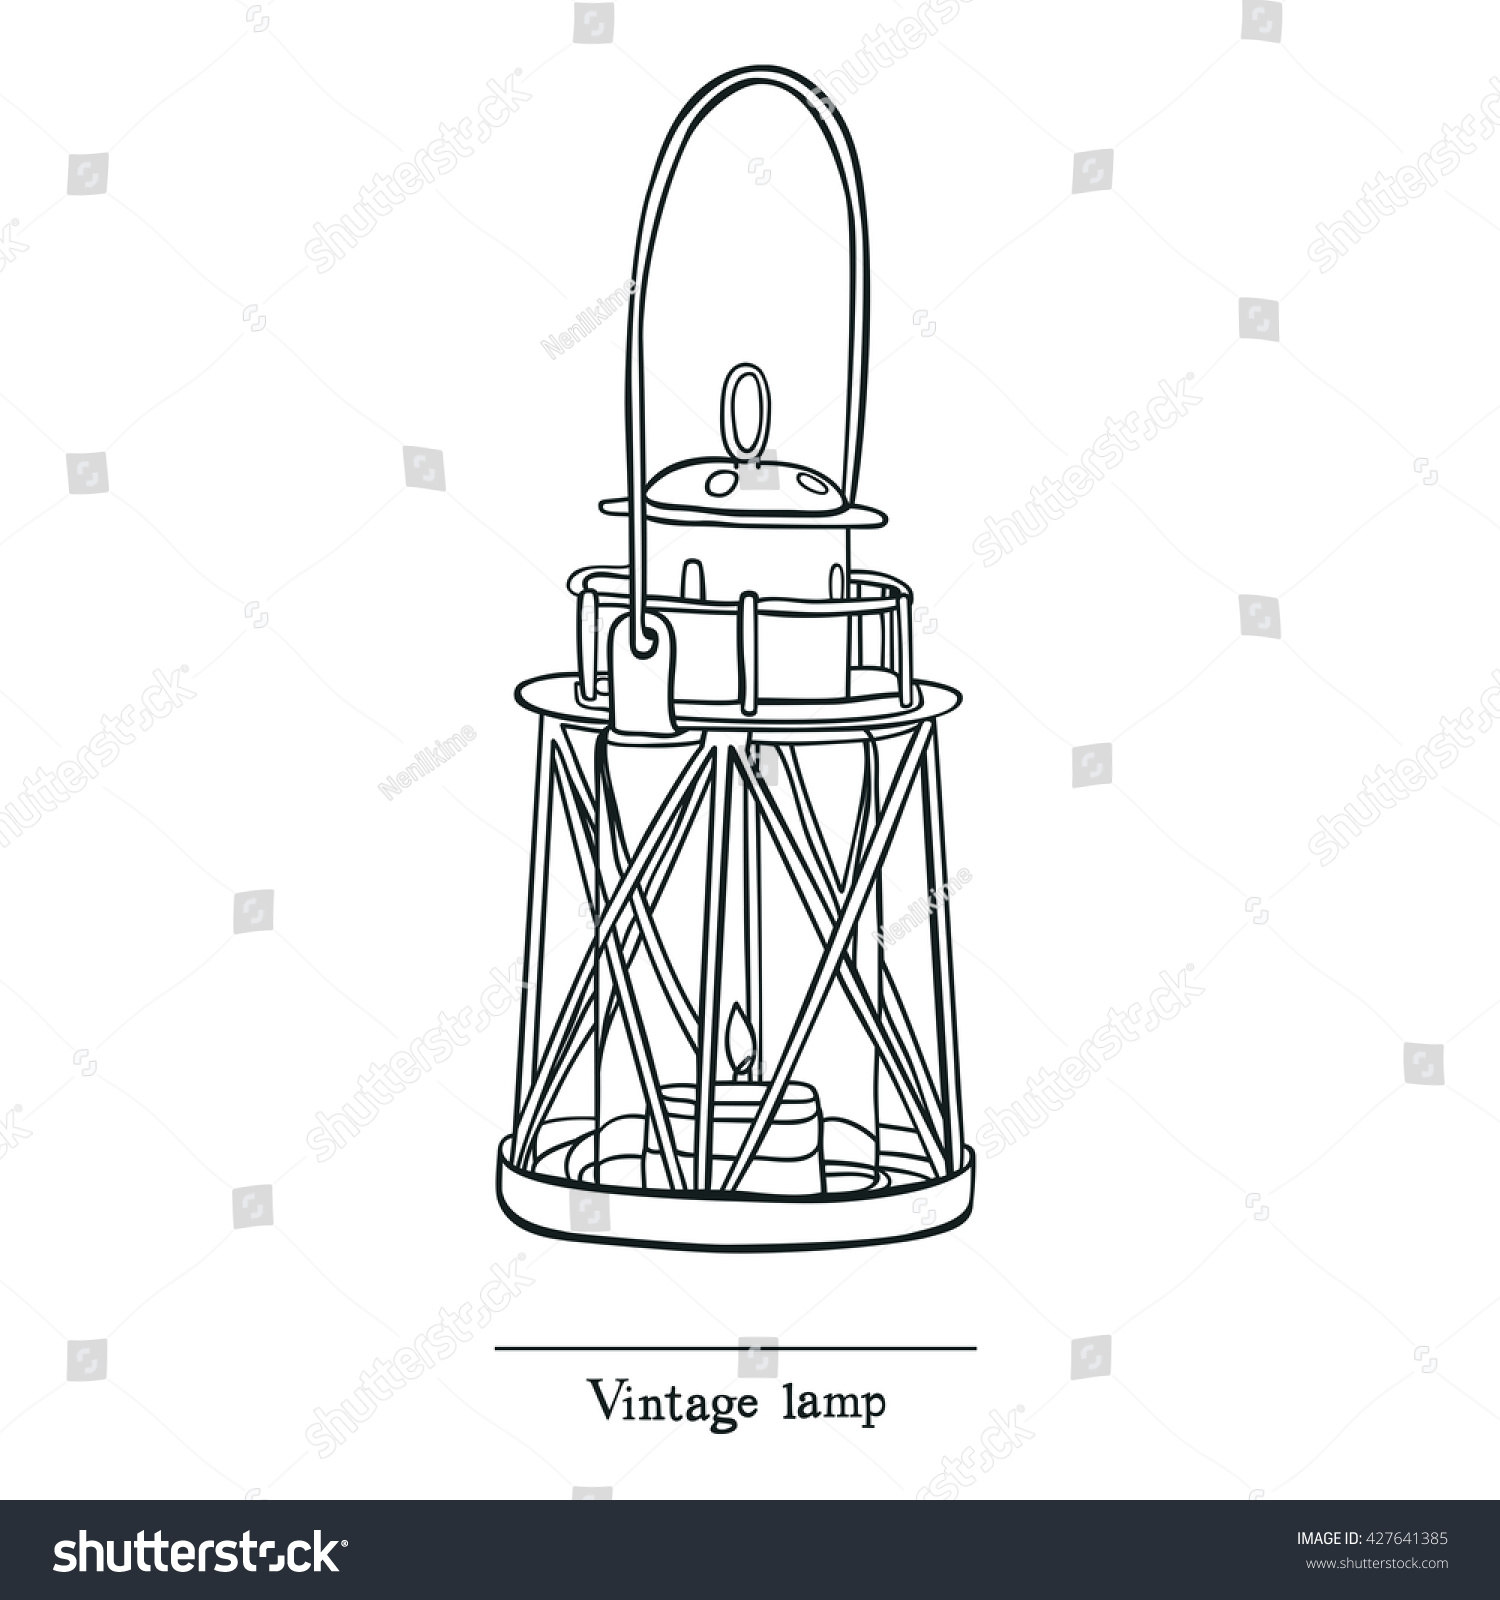 Vintage Candle Lamp Line Sketch Style Stock Vector 427641385 ... for candle lamp drawing  83fiz